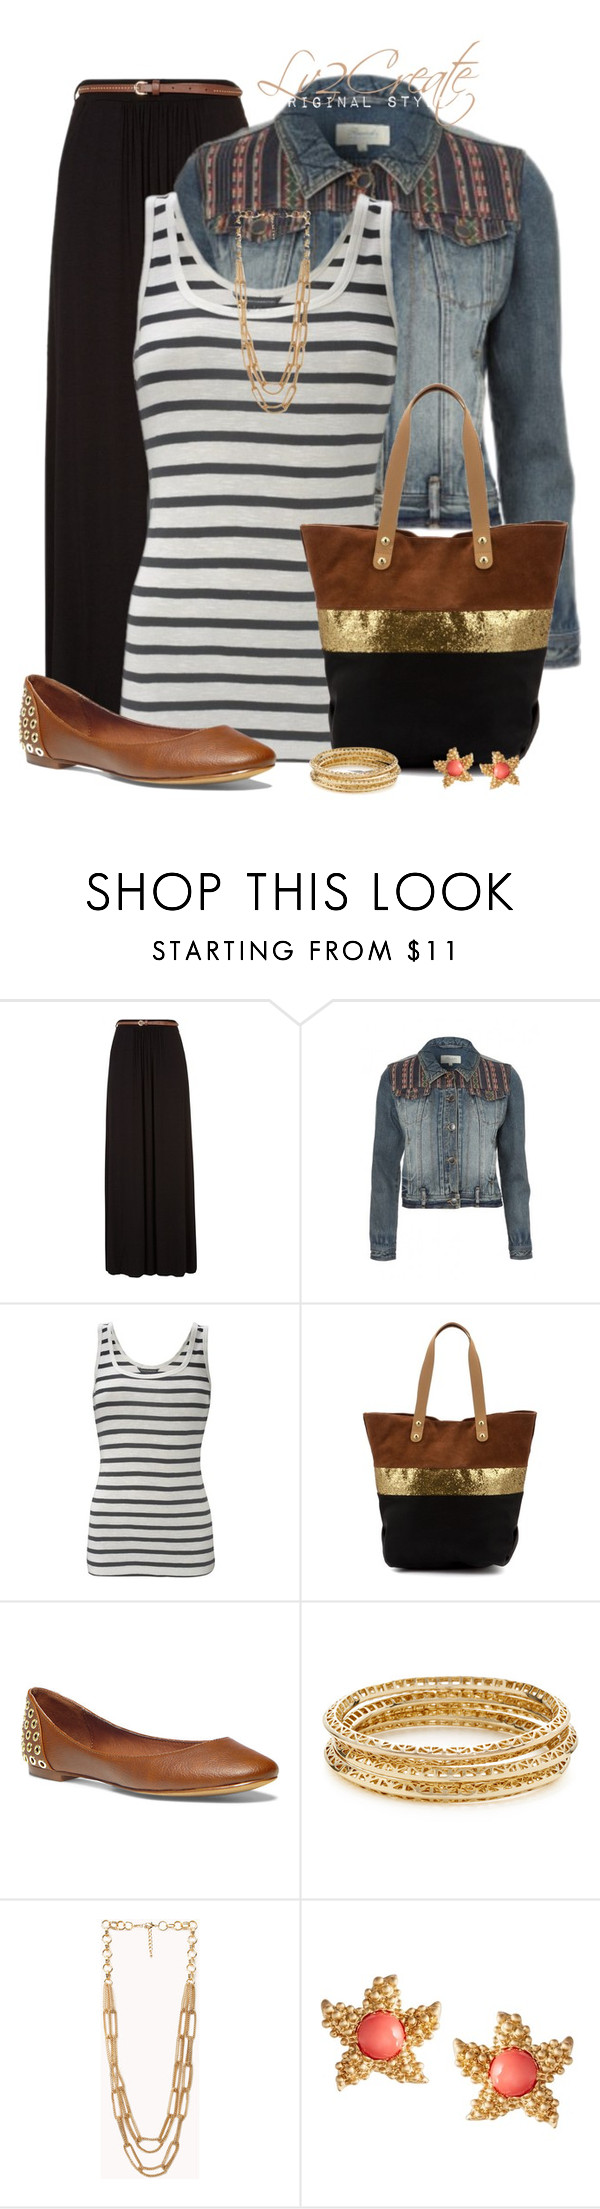 """""""Black Maxi & Flats"""" by lv2create ❤ liked on Polyvore featuring French Connection, Steve Madden, Forever 21 and Kenneth Jay Lane"""